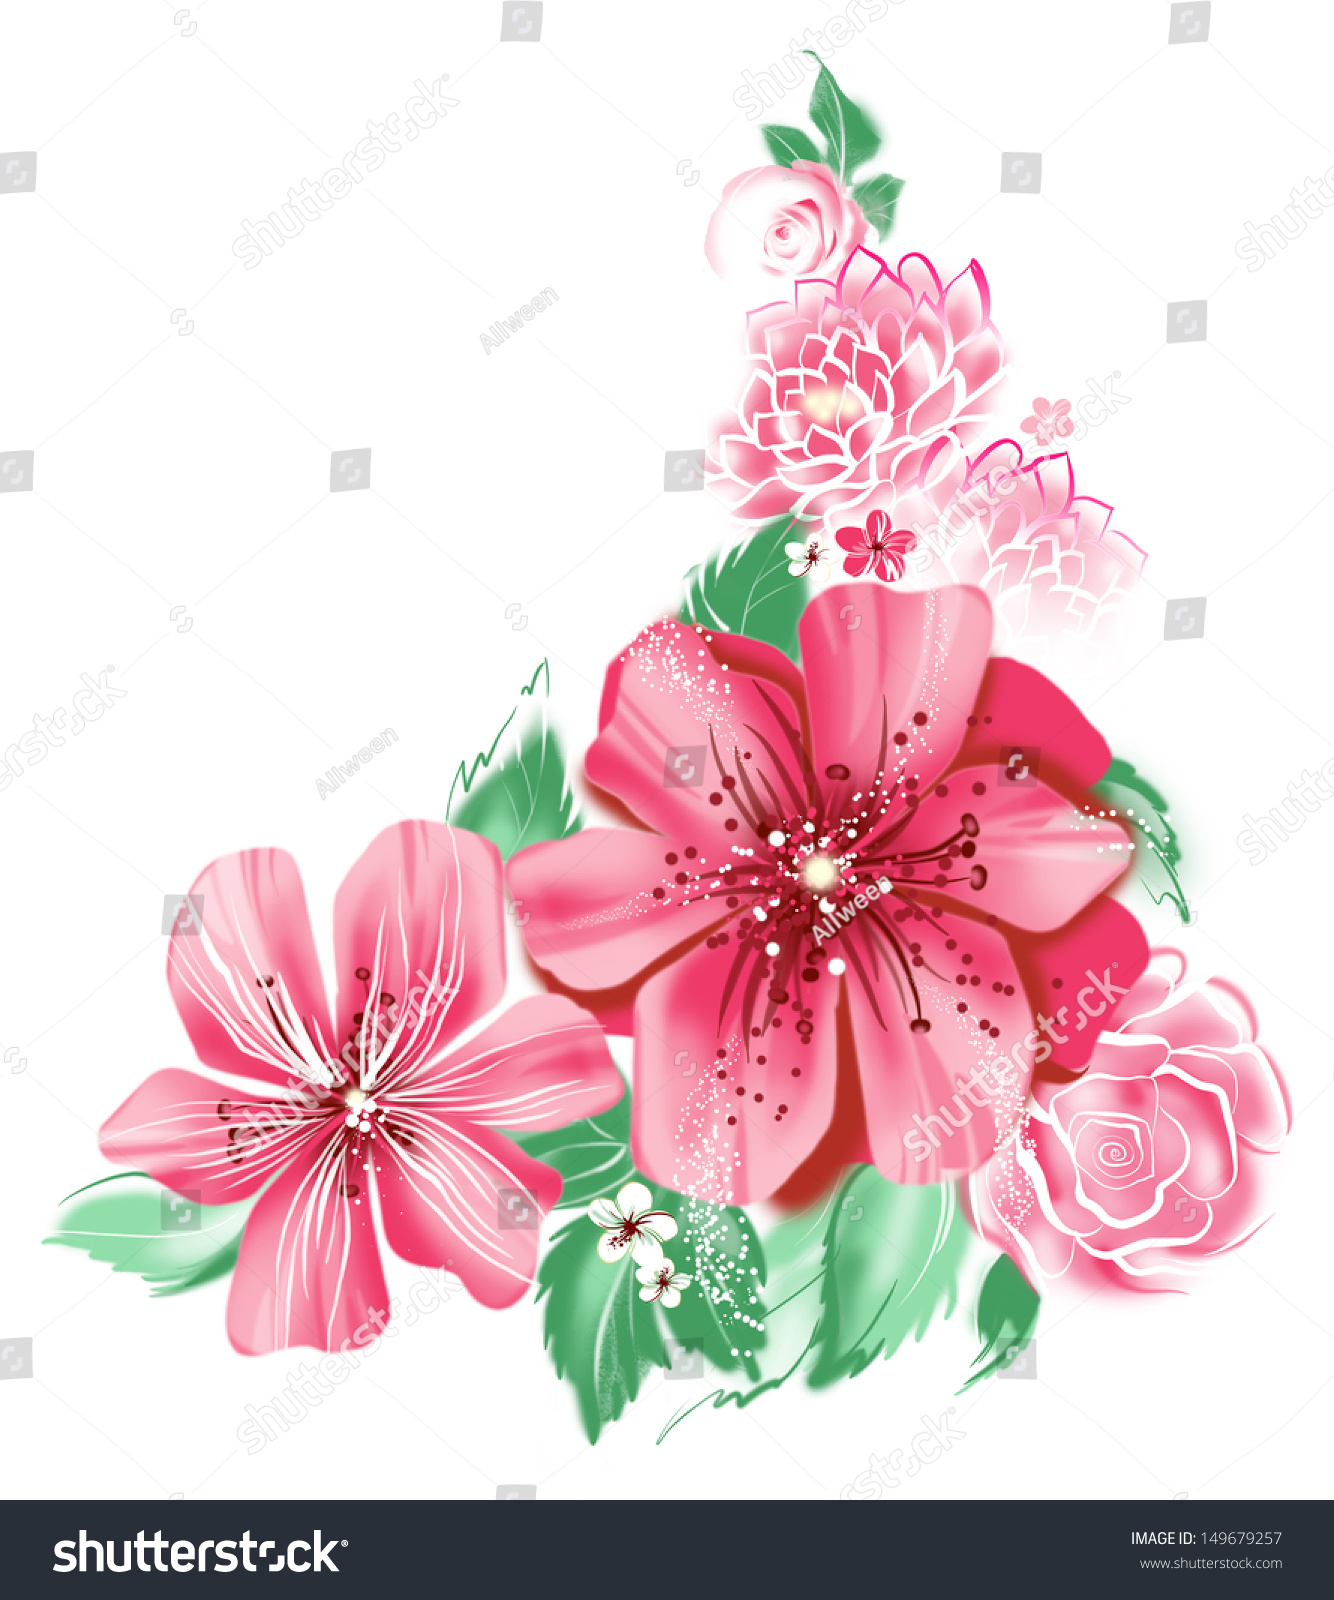 Color Illustration Flowers Watercolor Paintings Greeting Stock